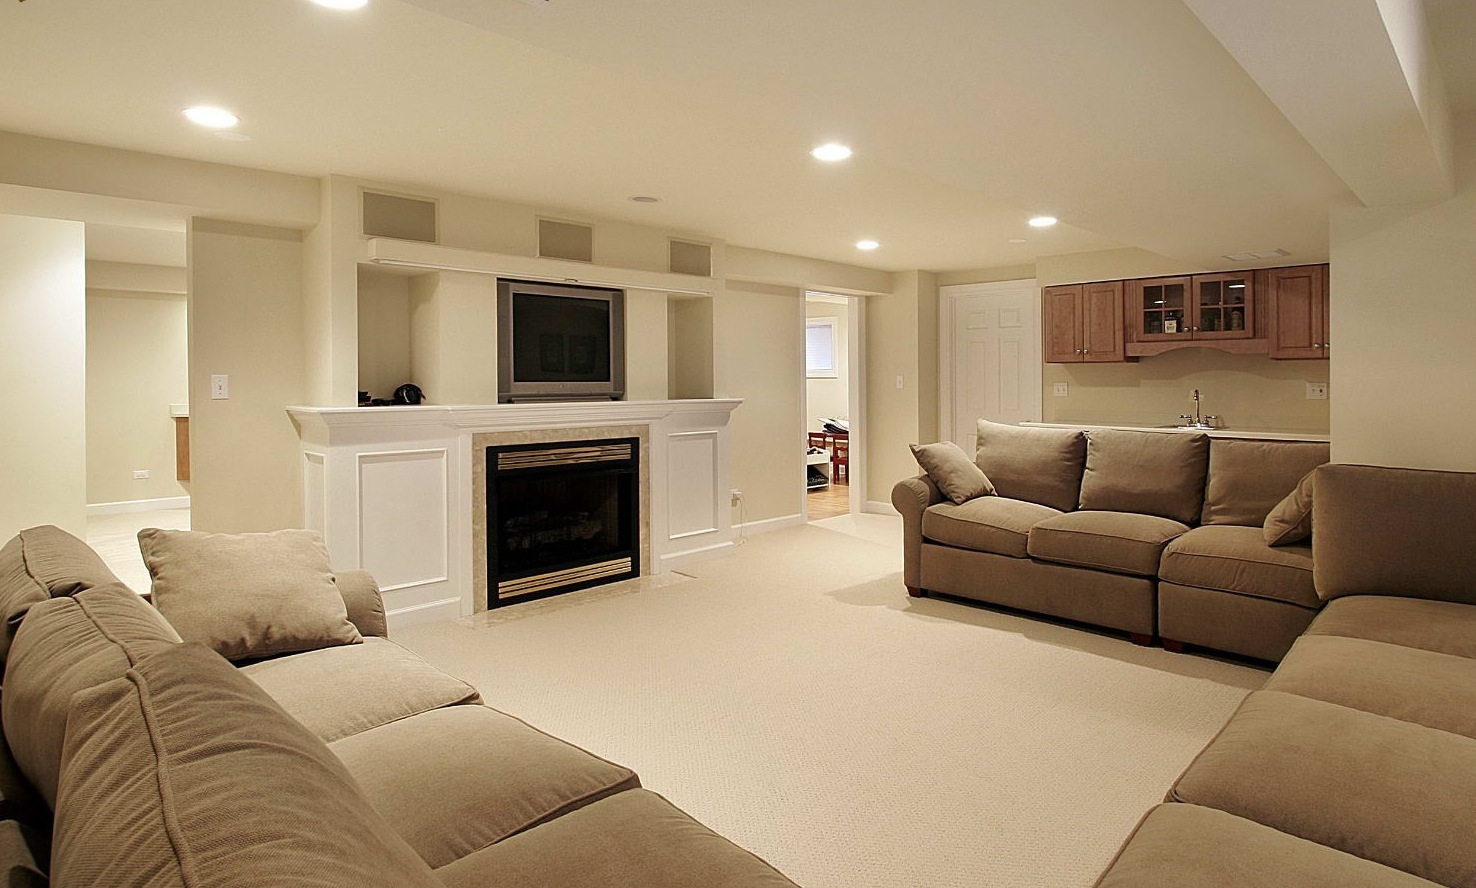 Remodeling Basement Ideas Endearing 30 Basement Remodeling Ideas & Inspiration Review